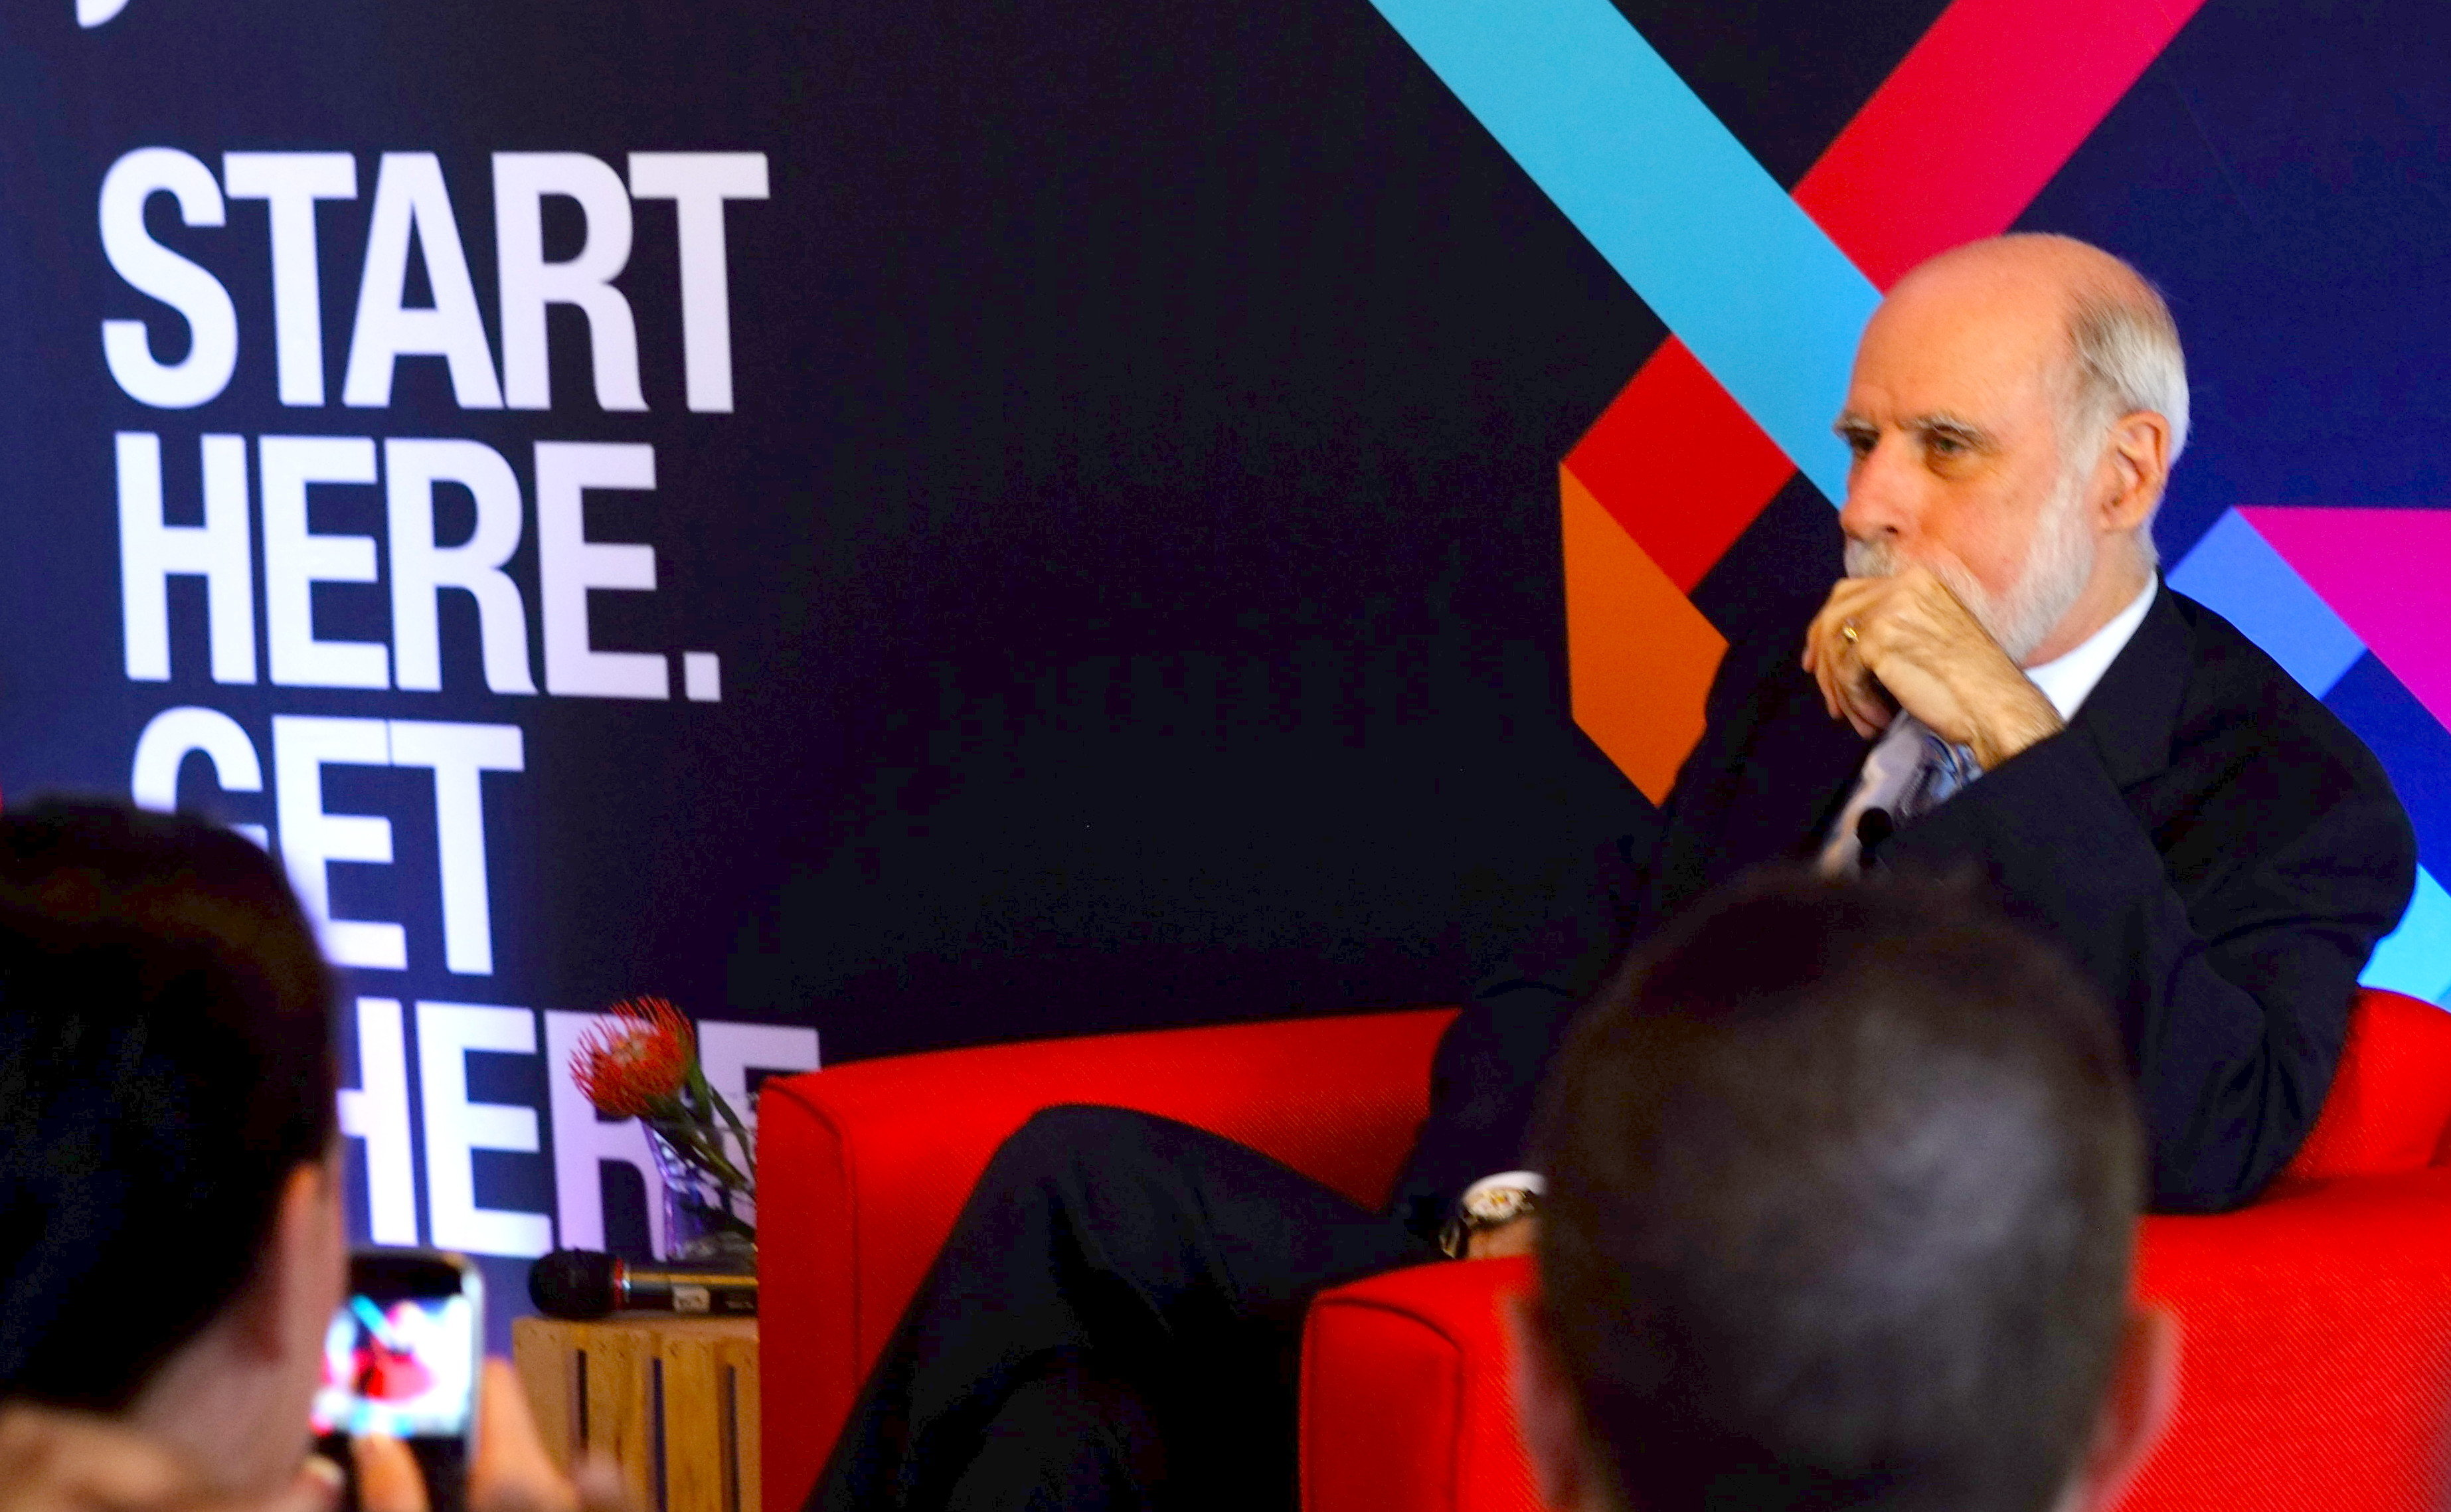 Father of the internet says PRISM is an opportunity